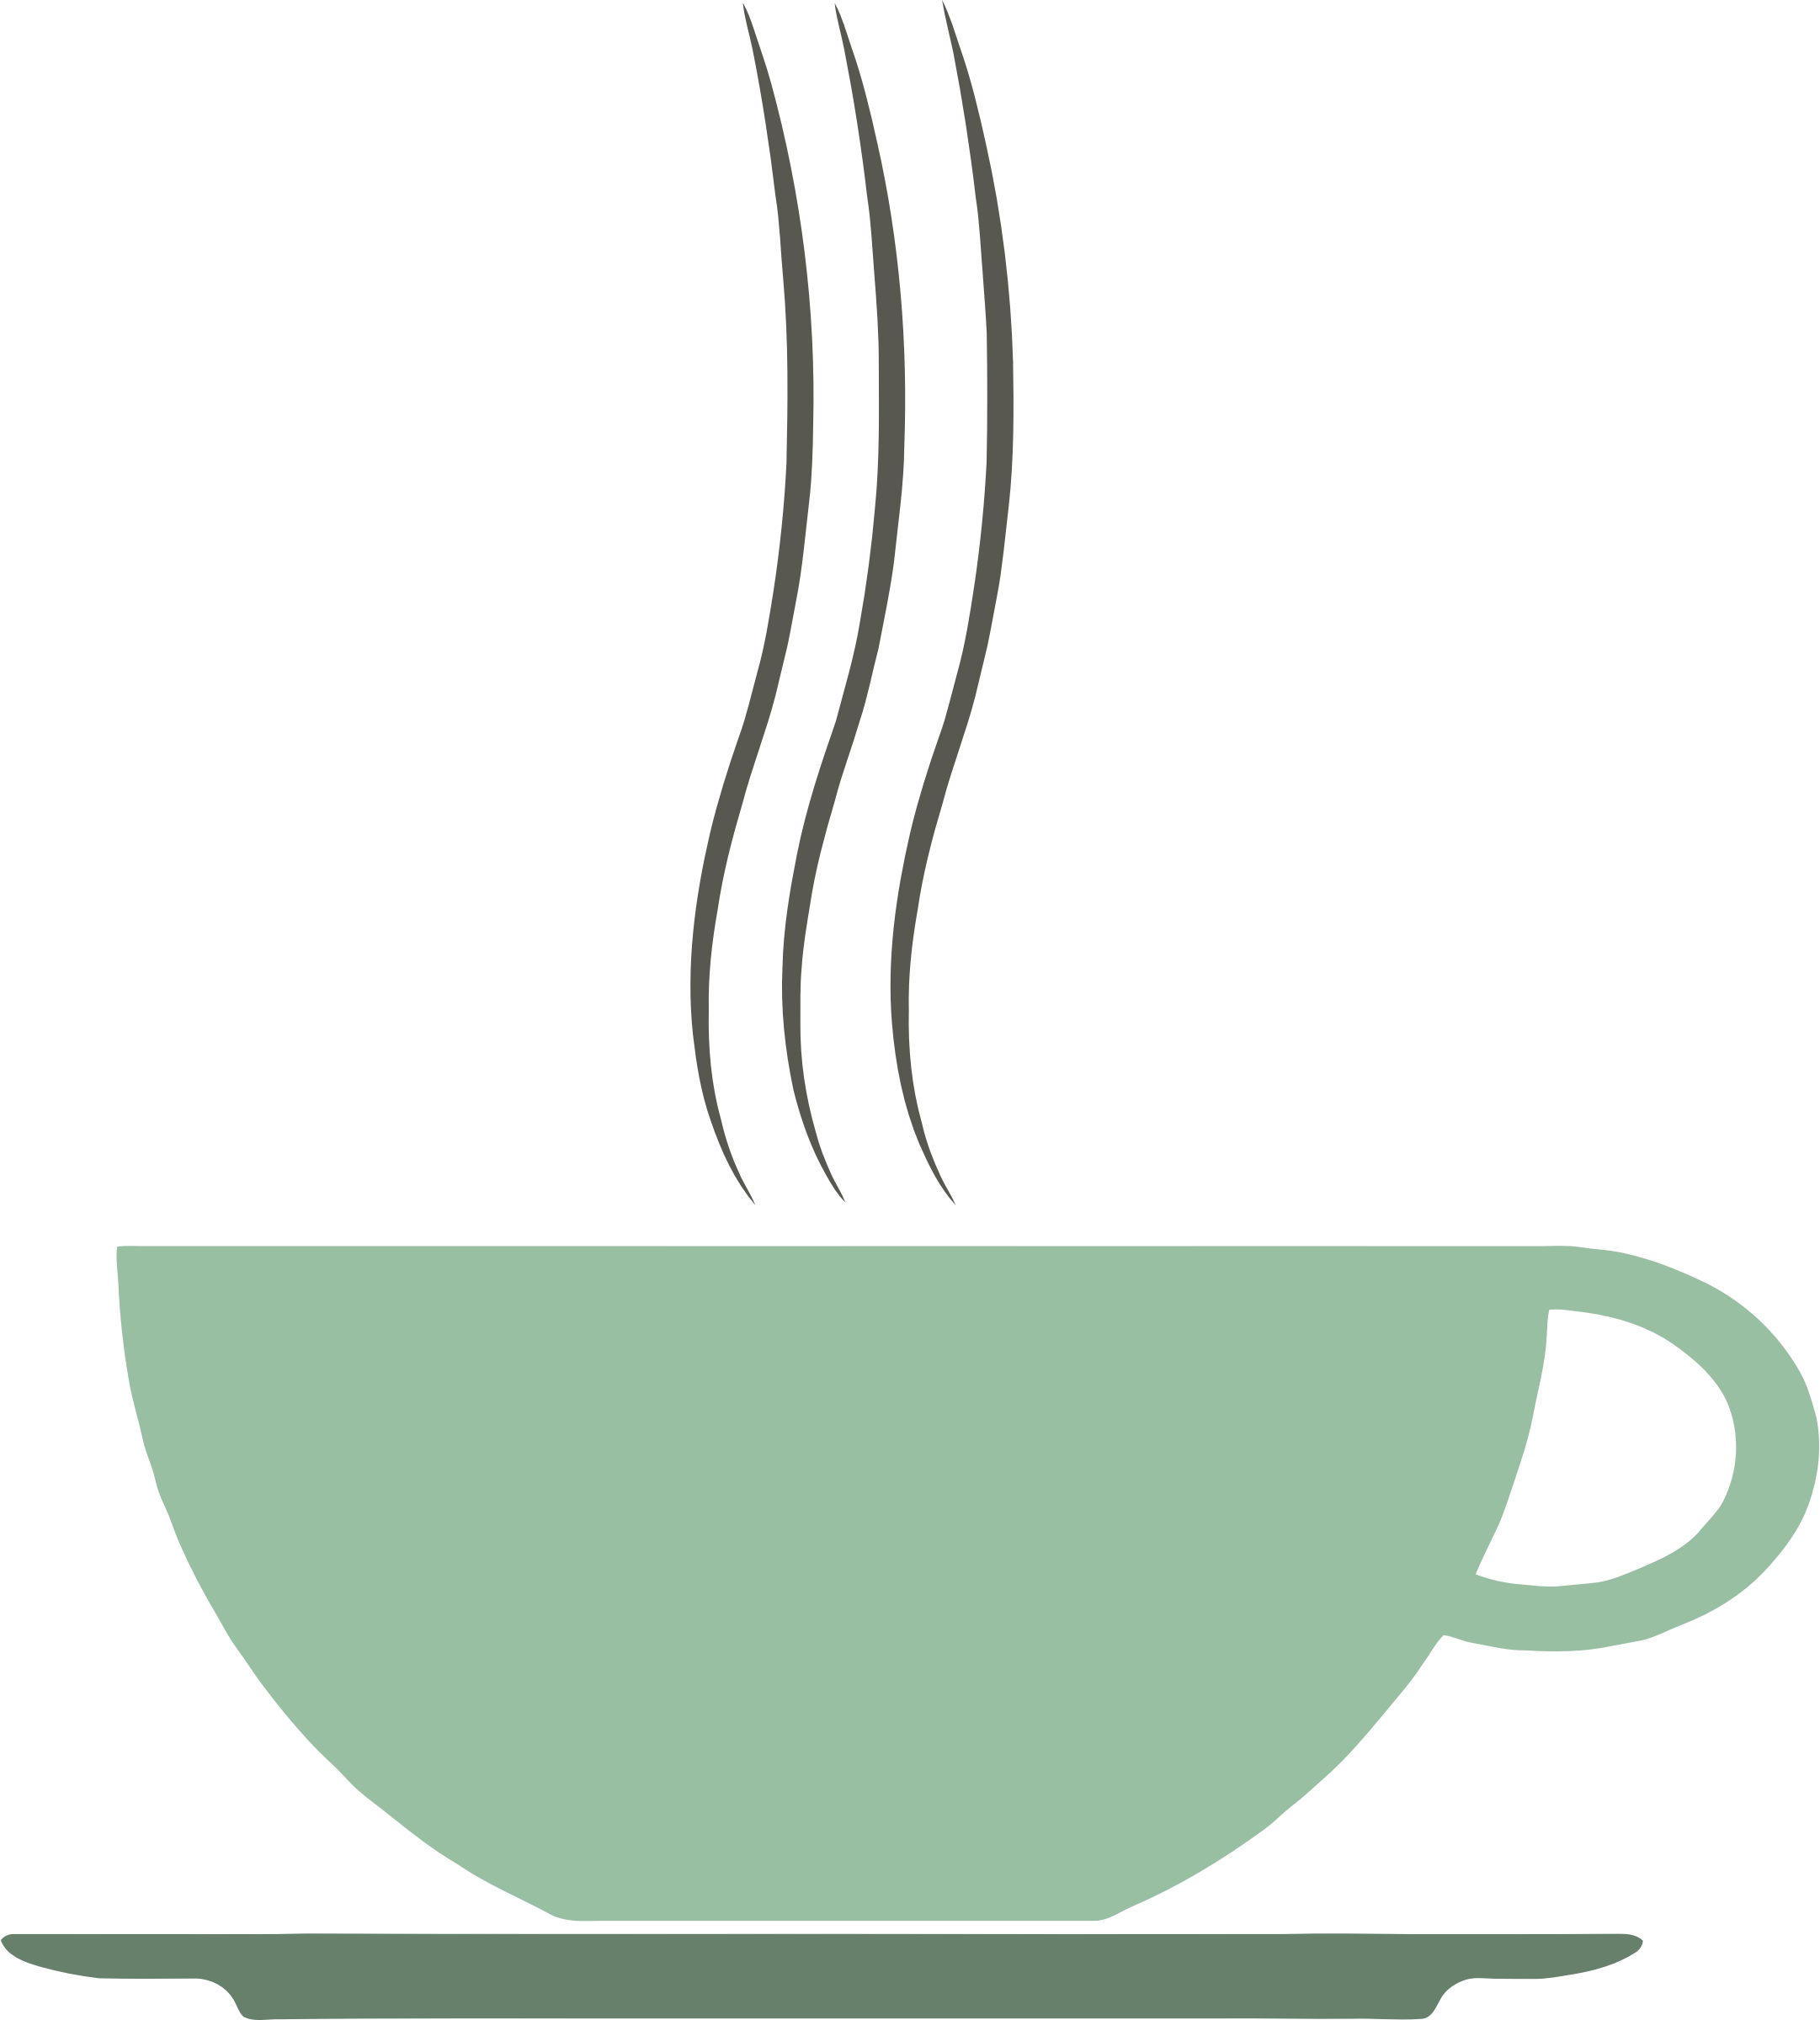 Coffee cup tea clip art free clipart 2 clipartcow 3.